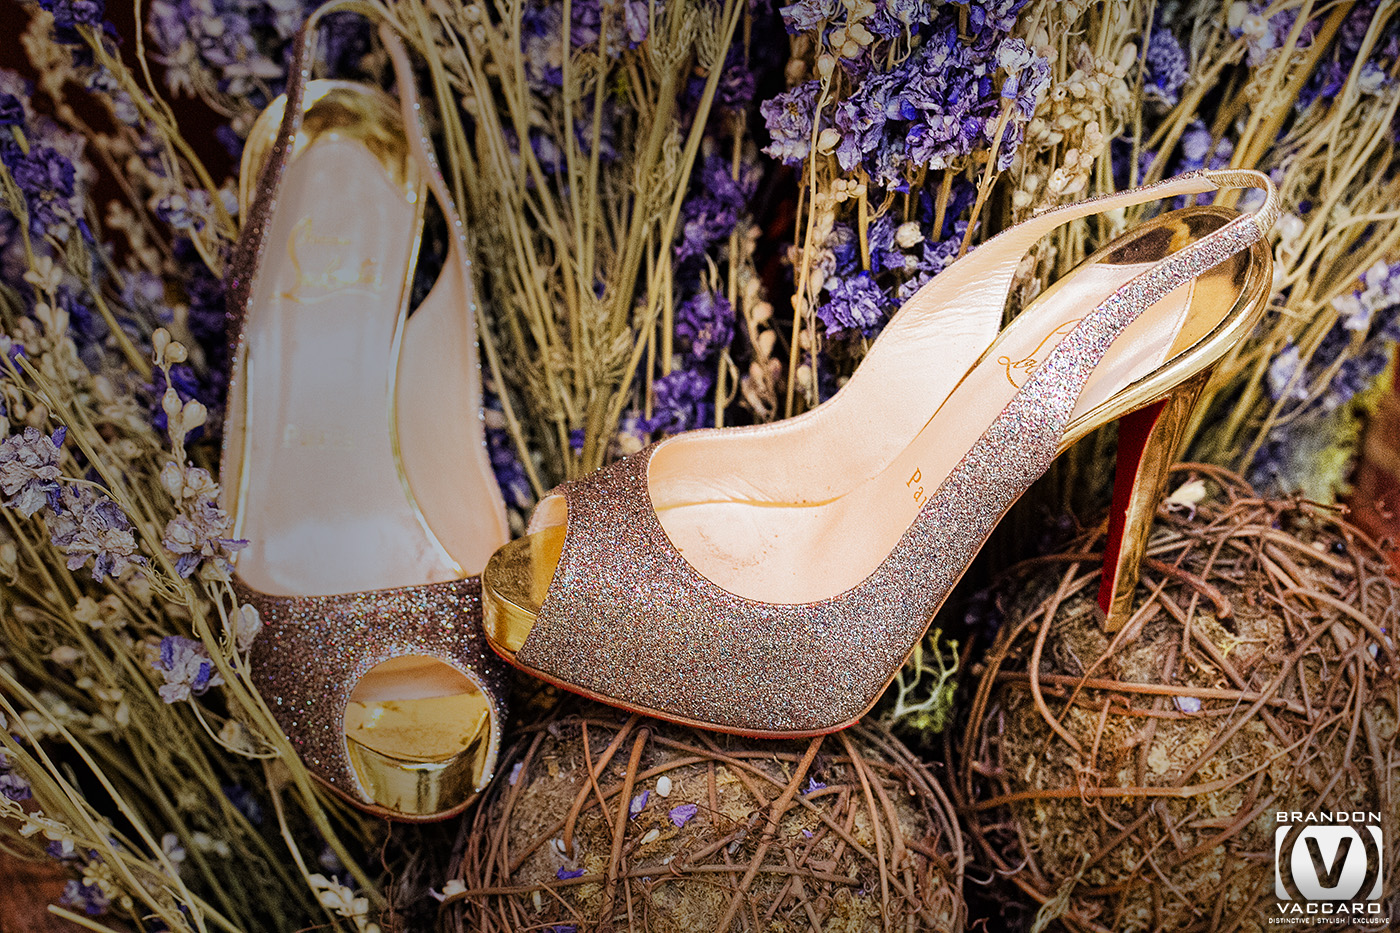 real-wedding-shoes-louis vuitton.jpg